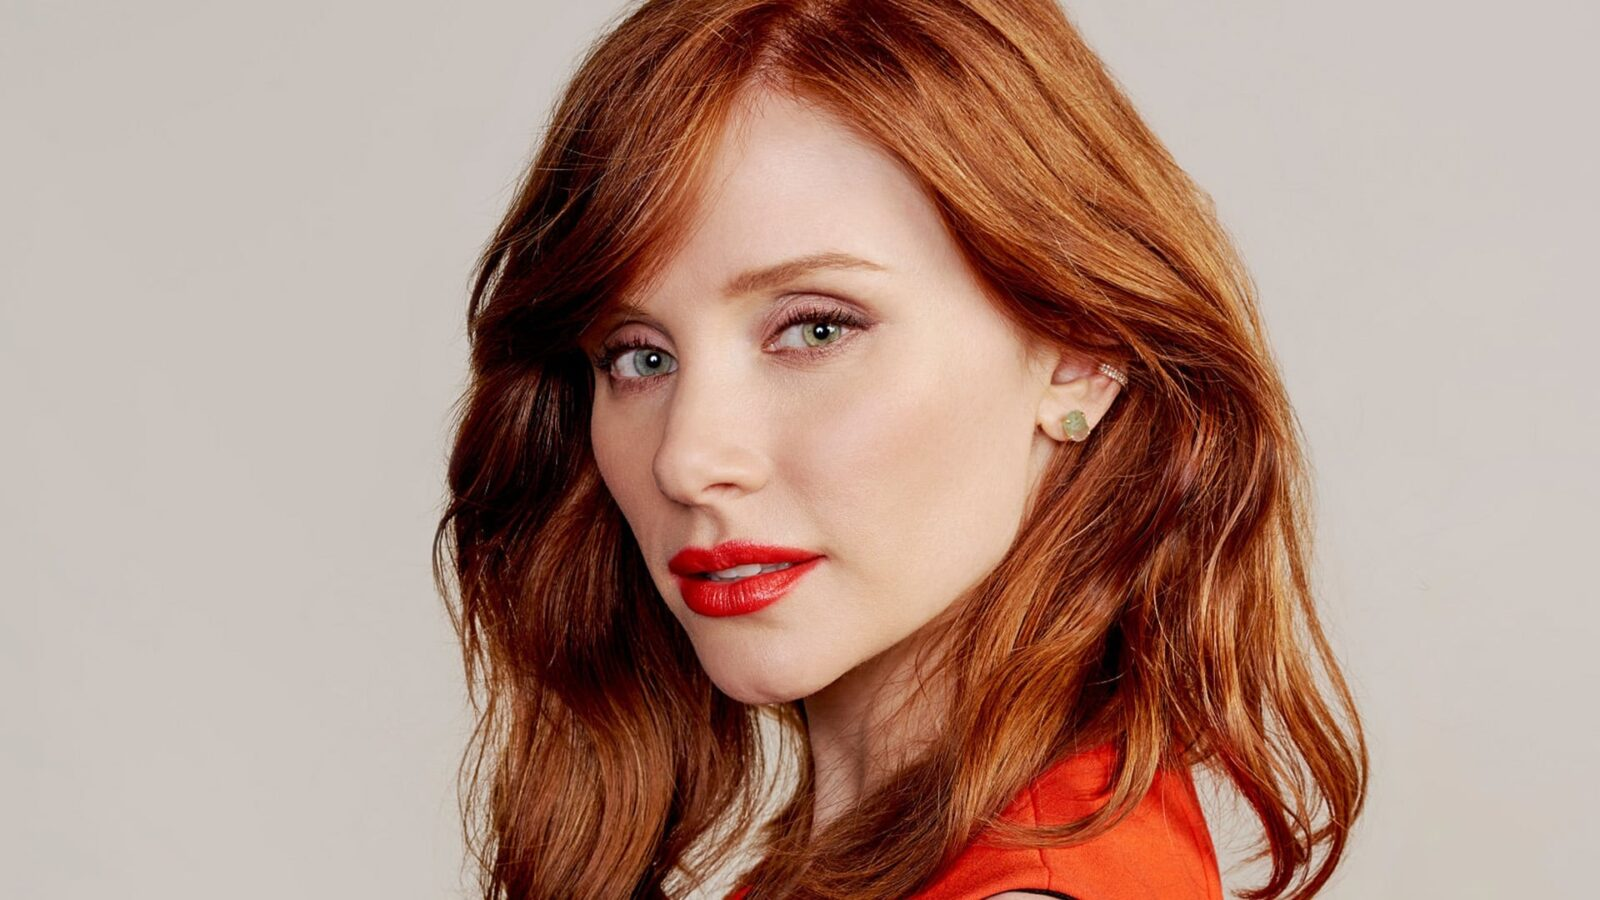 Car 24 Wallpaper 24 Bryce Dallas Howard Wallpapers Hd Download